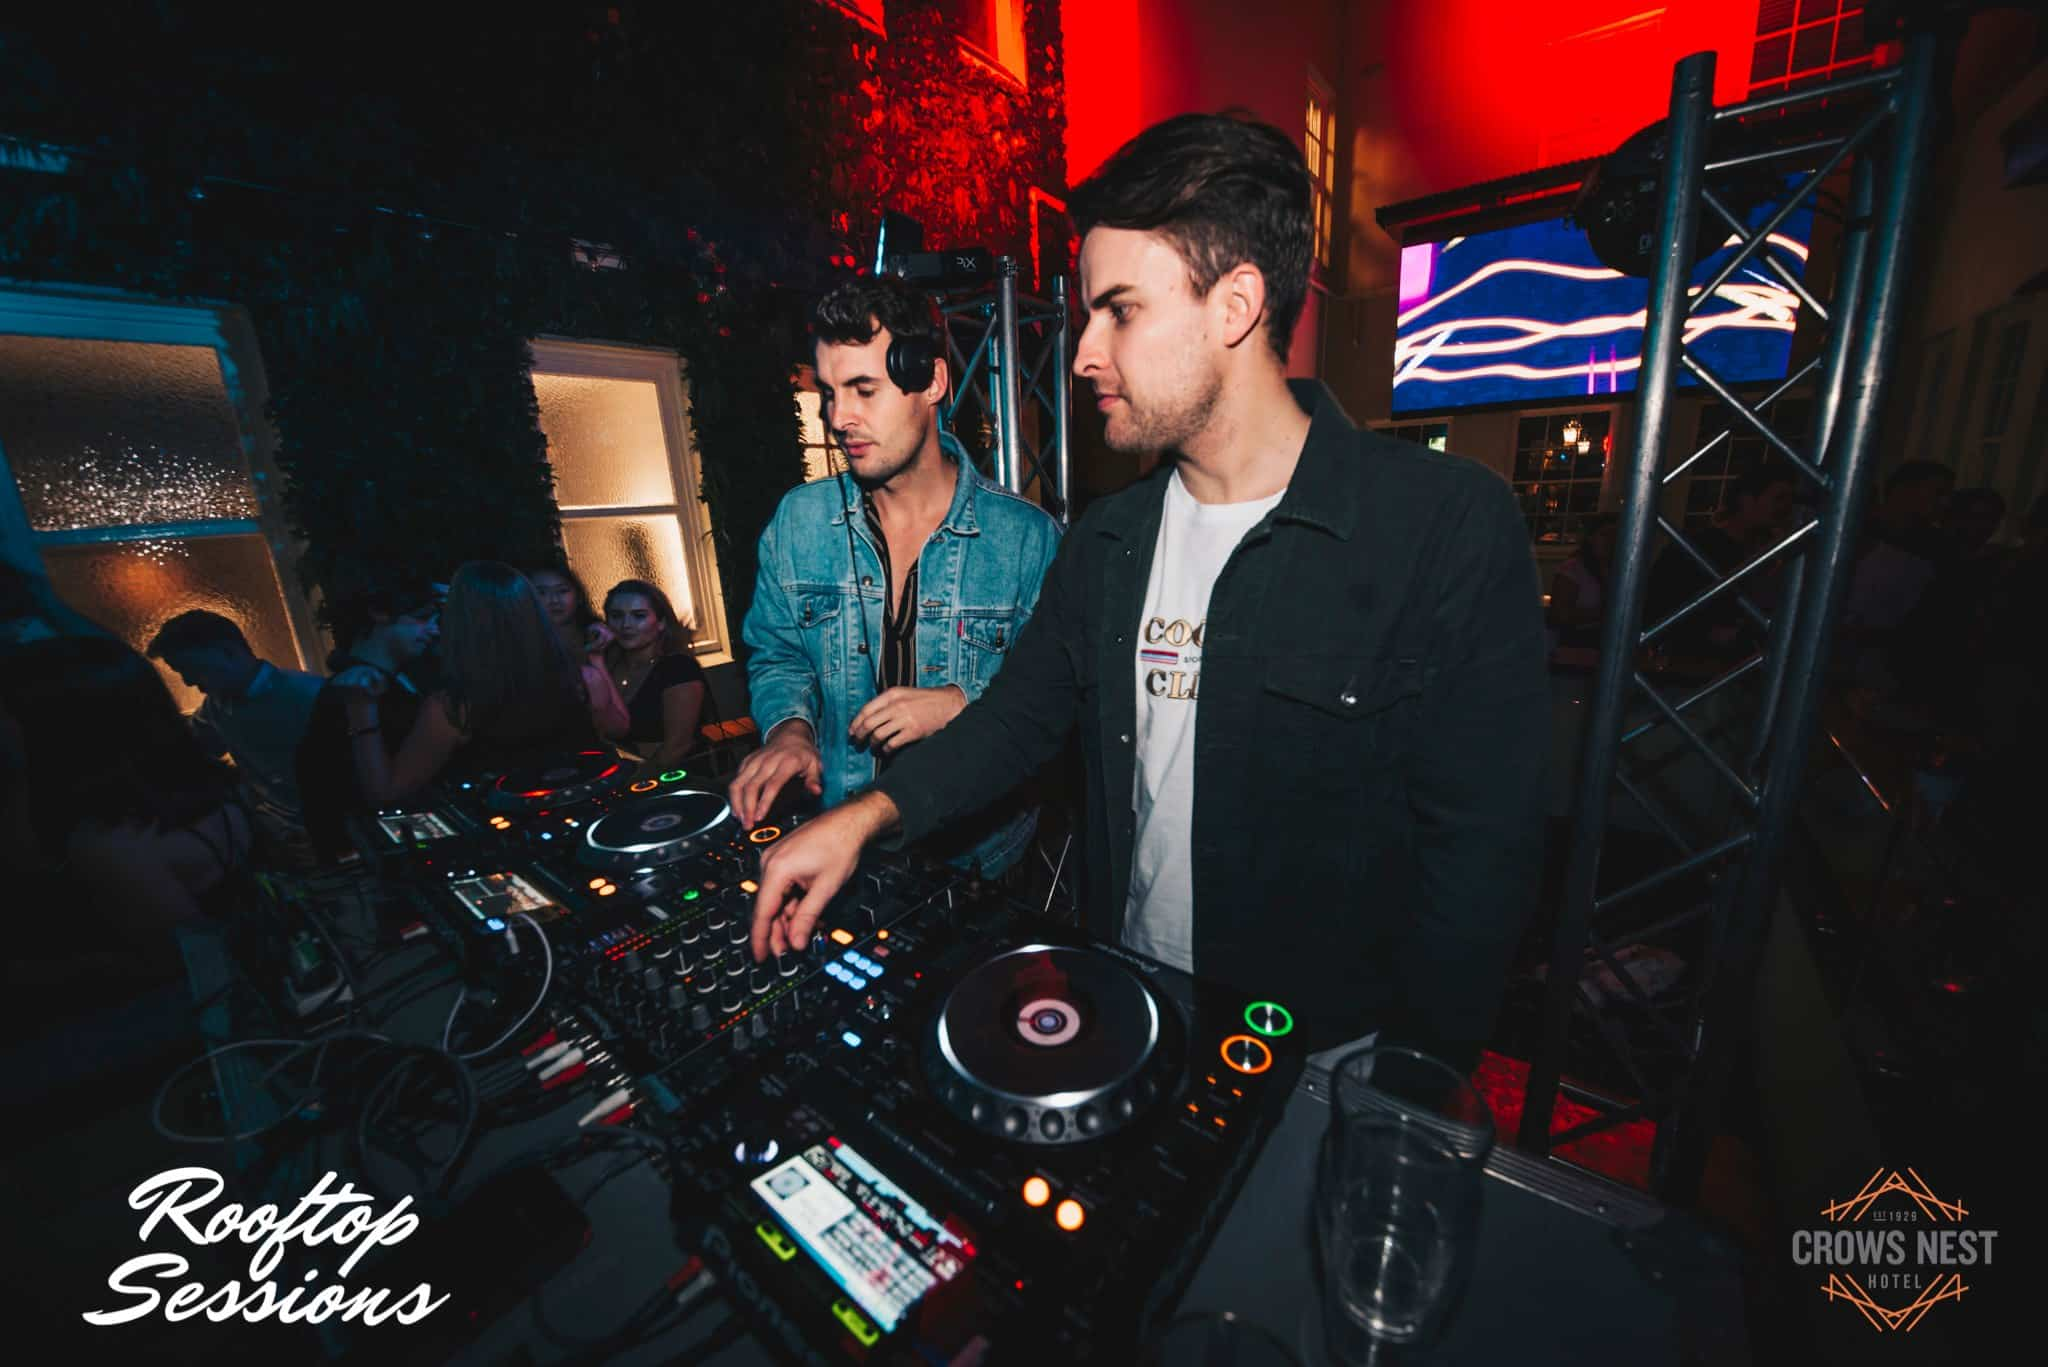 Go Freek DJ Set at the Crow's Nest Hotel Rooftop for Rooftop Sessions in Sydney.